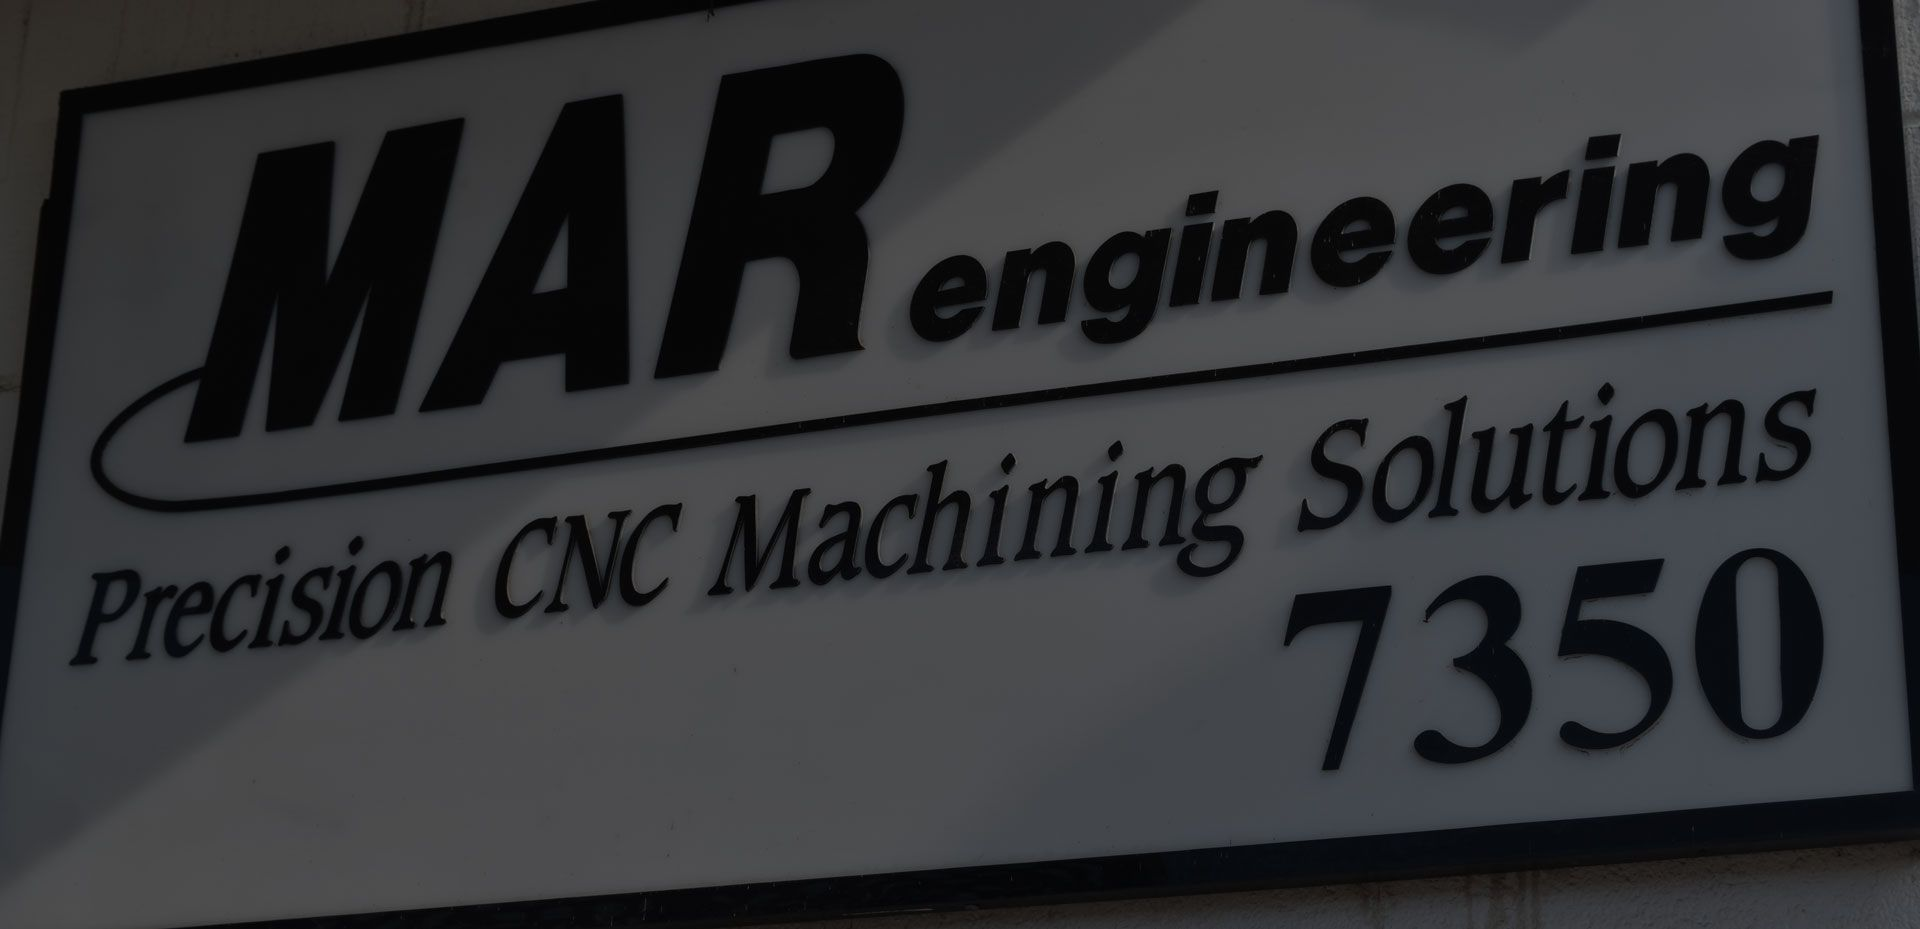 Mar Engineering - the machine shop for CNC machining solutions